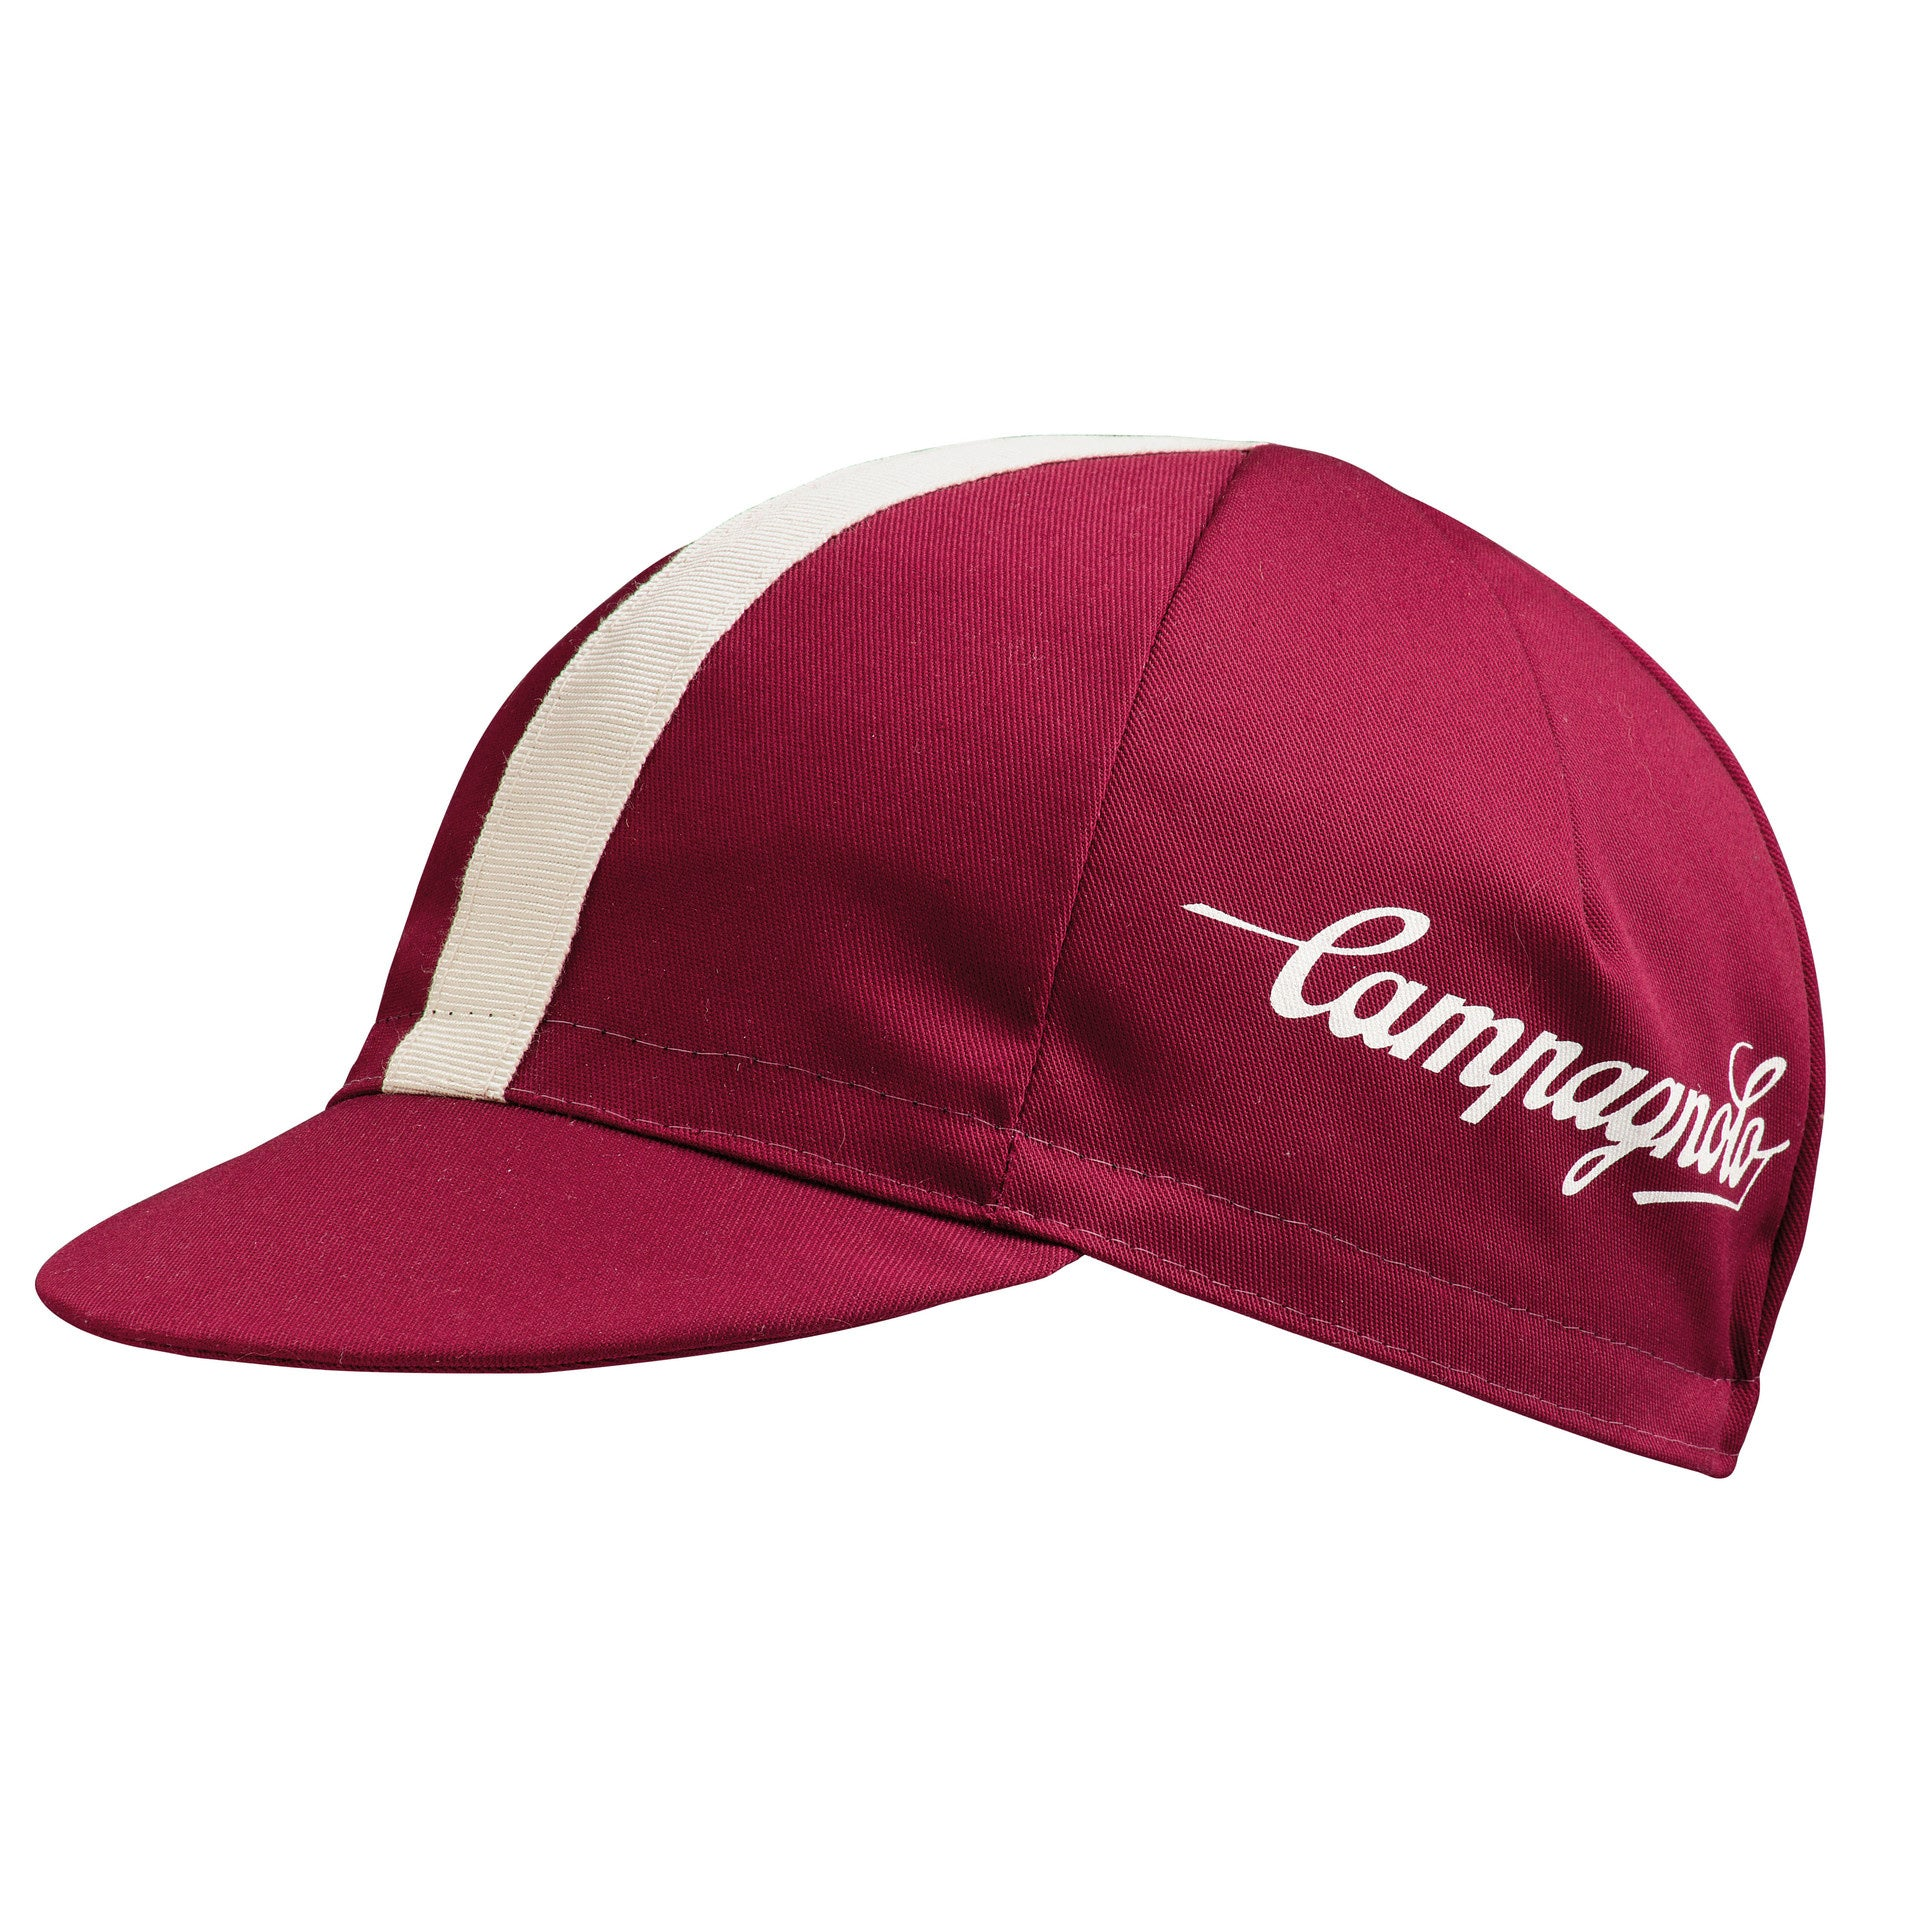 Campagnolo Classic Burgundy Red Cycling Cap